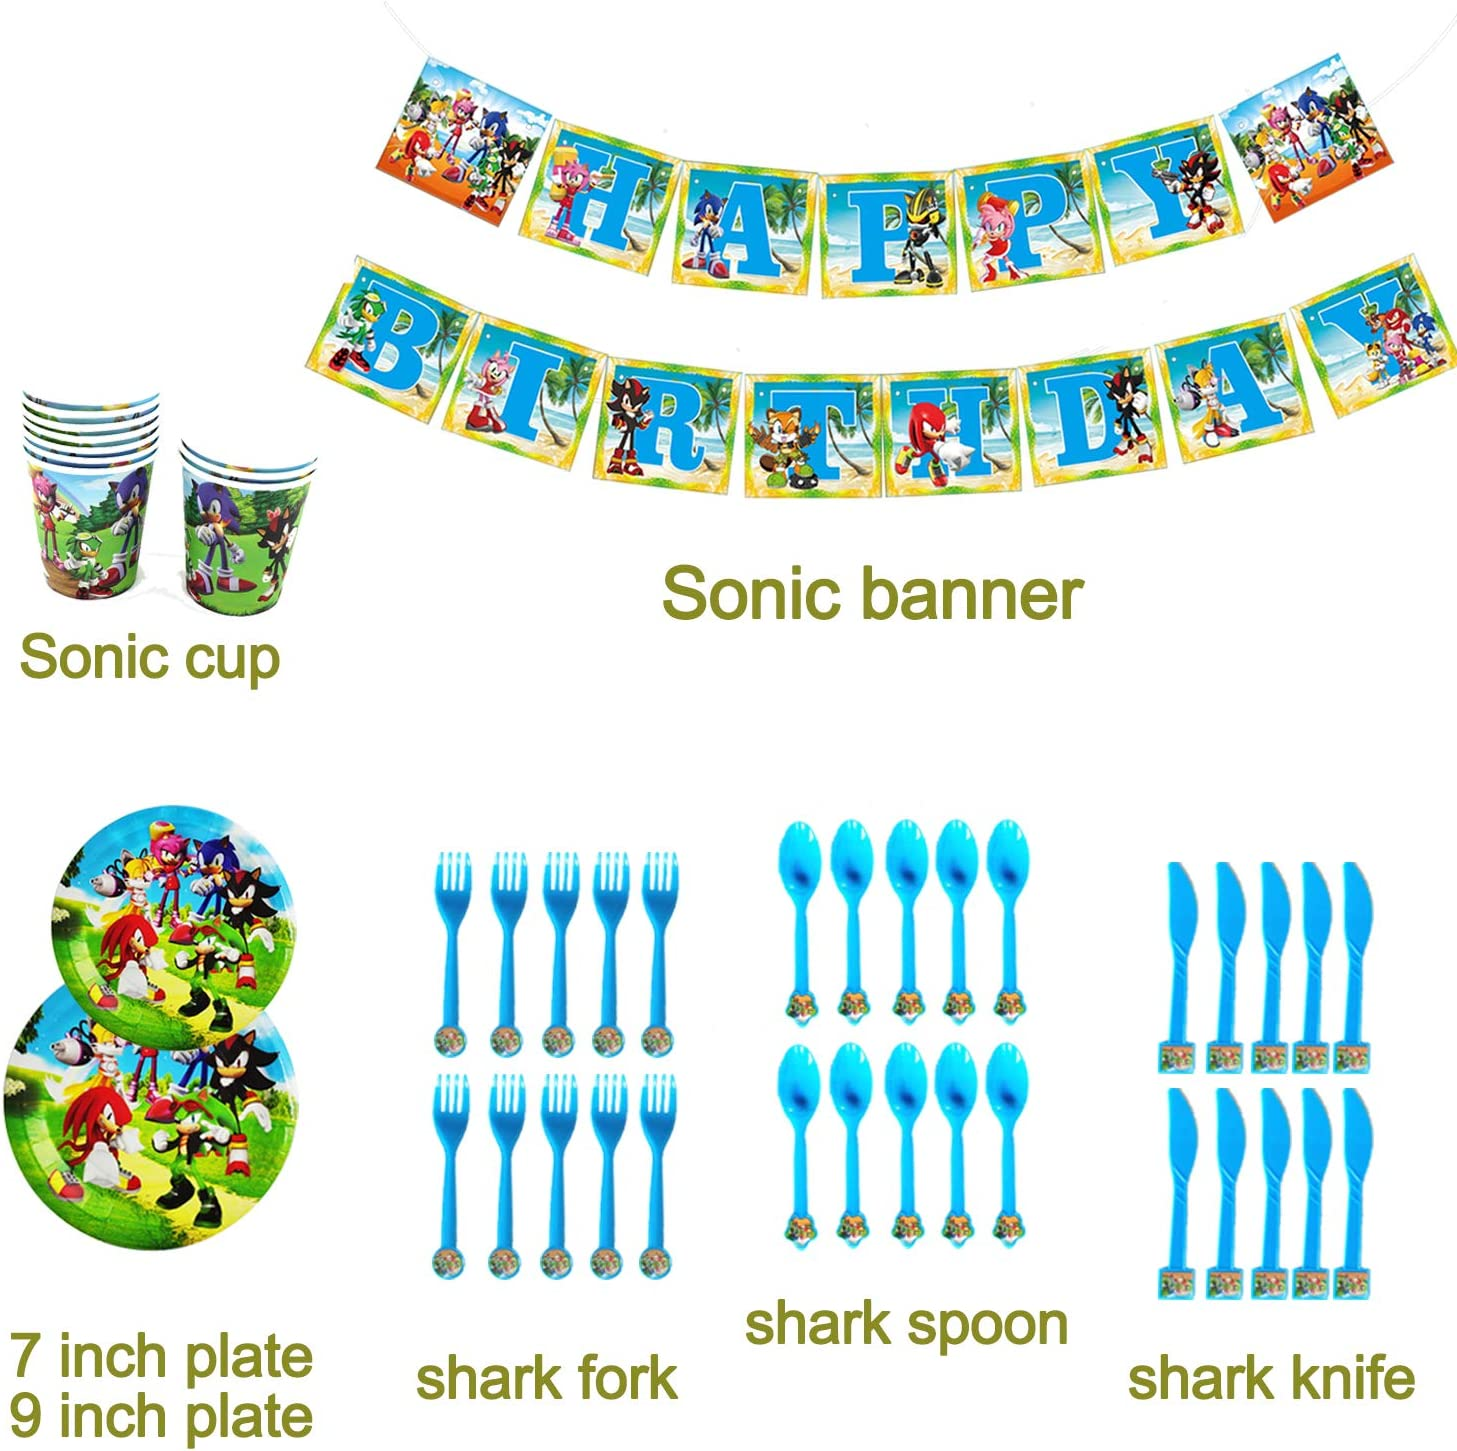 Tablecloth Birthday Party Favor Pack Set for Kids Boy Straws Balloon Plates Spoons Cake Toppers Flatware Table Covers Cups Banner Knife Fork 149Pcs Sonic The Hedgehog Party Favor Party Decorations Birthday Party Supplies Napkins